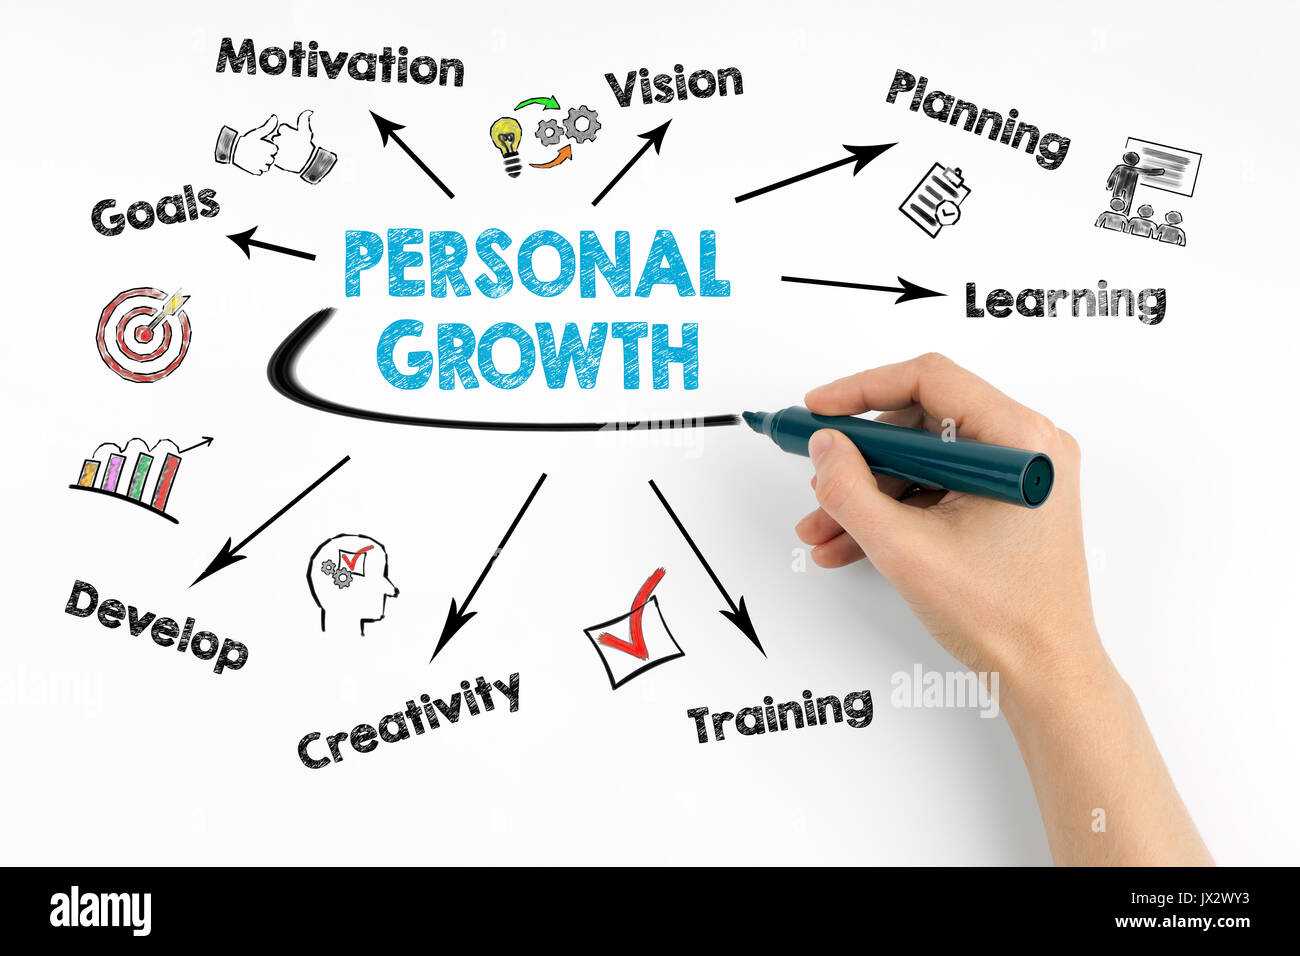 Personal Growth concept. Chart with keywords and icons on white background. - Stock Image